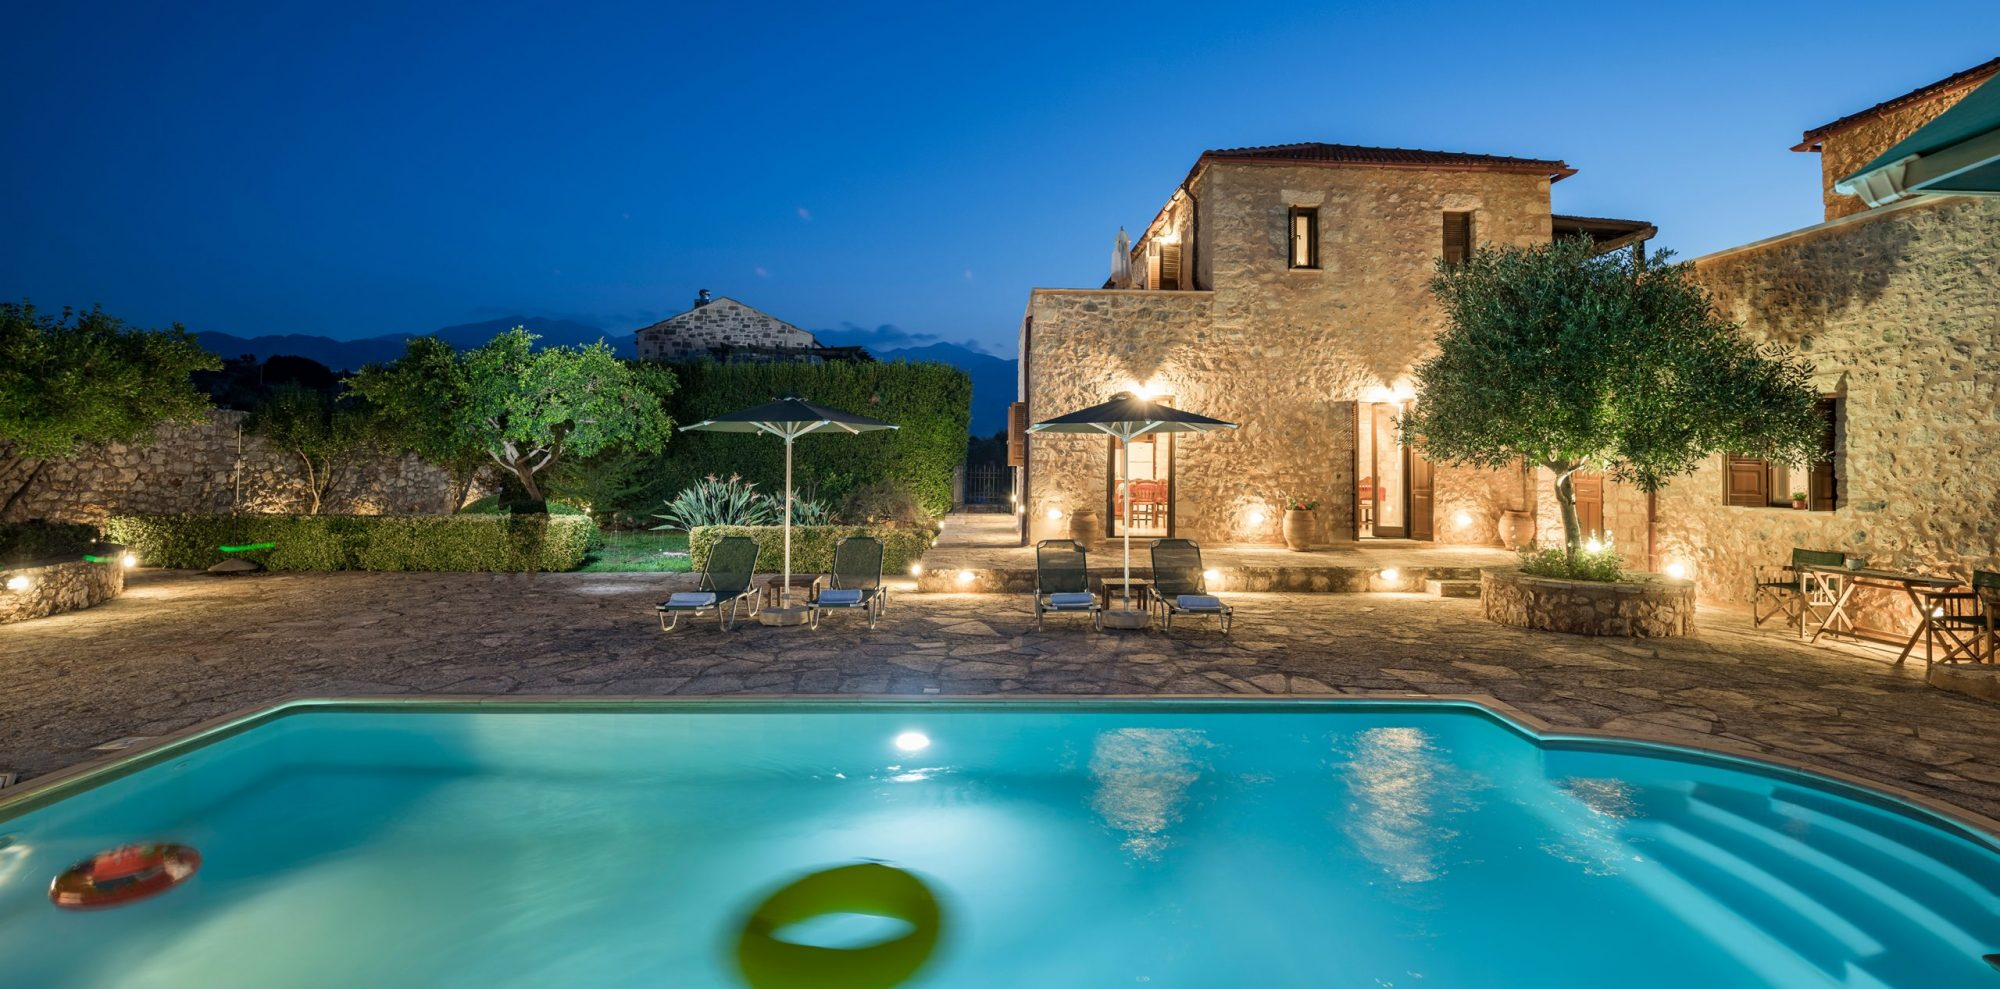 Xatheri Stone Luxury Villas